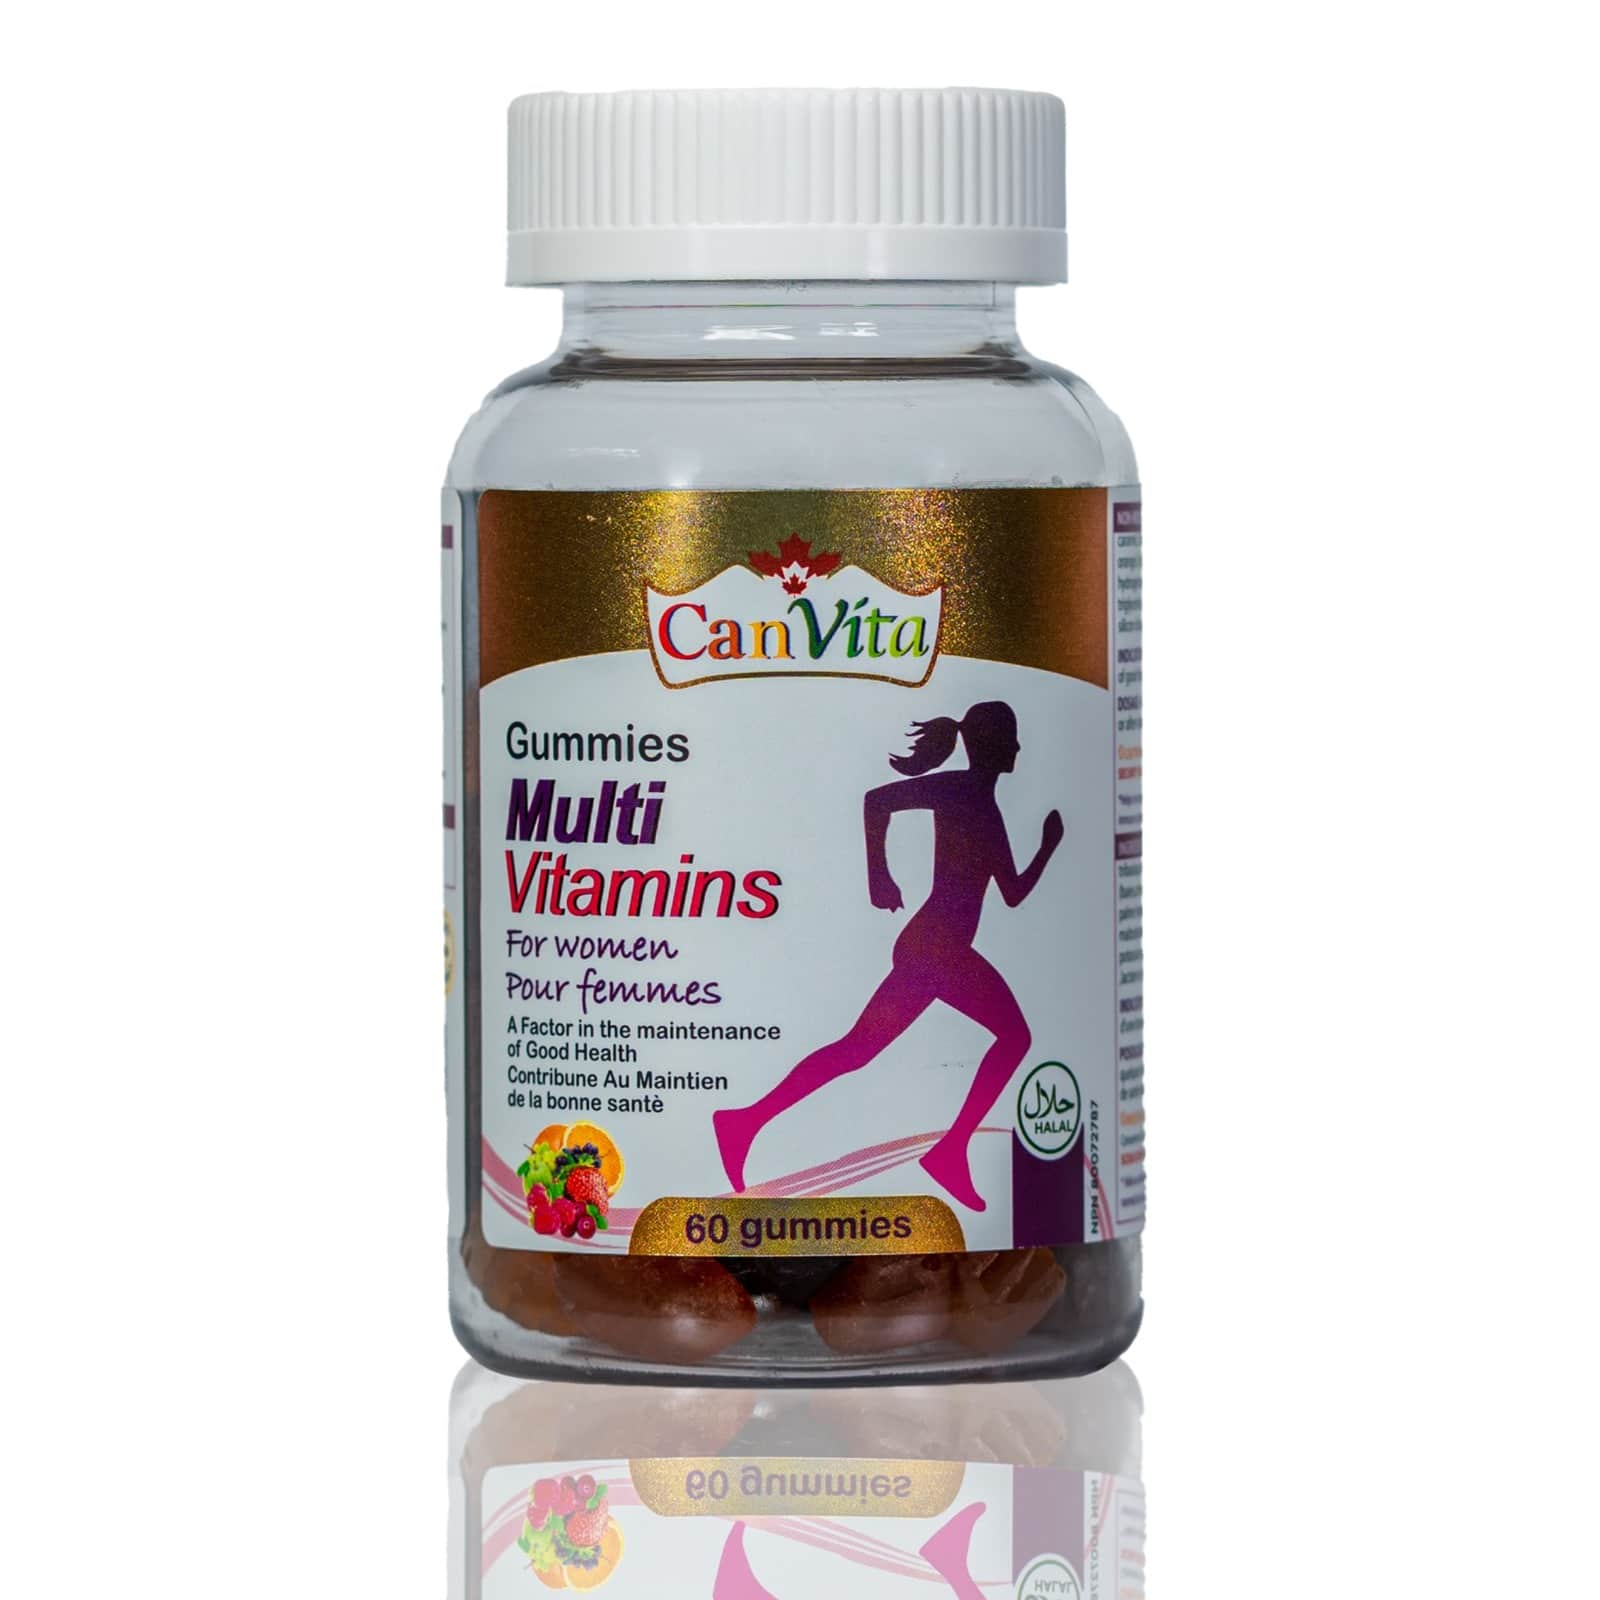 Canvita Women's Multivitamin Gummy